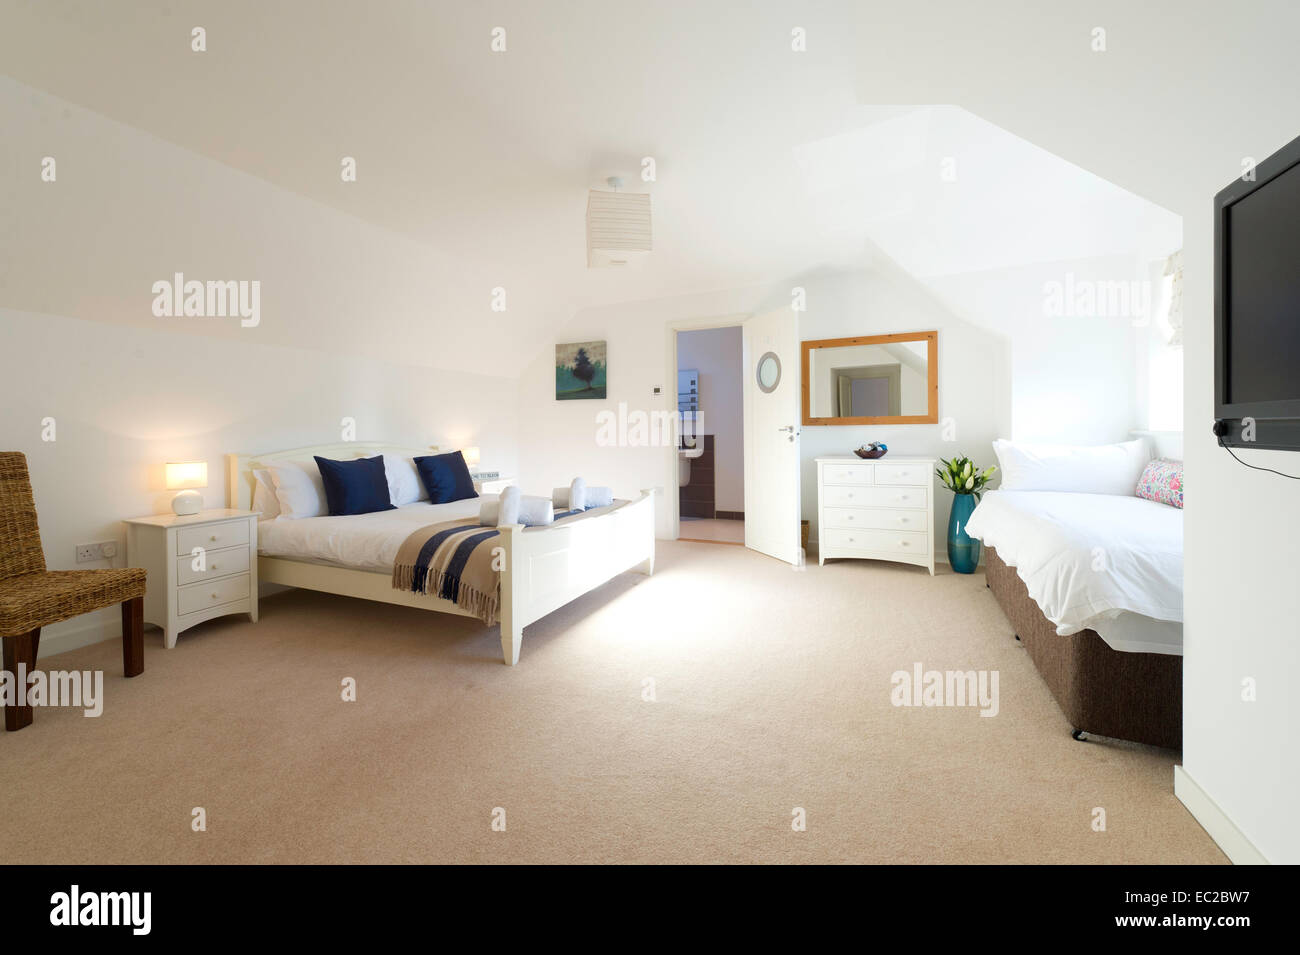 A holiday home bedroom - Stock Image